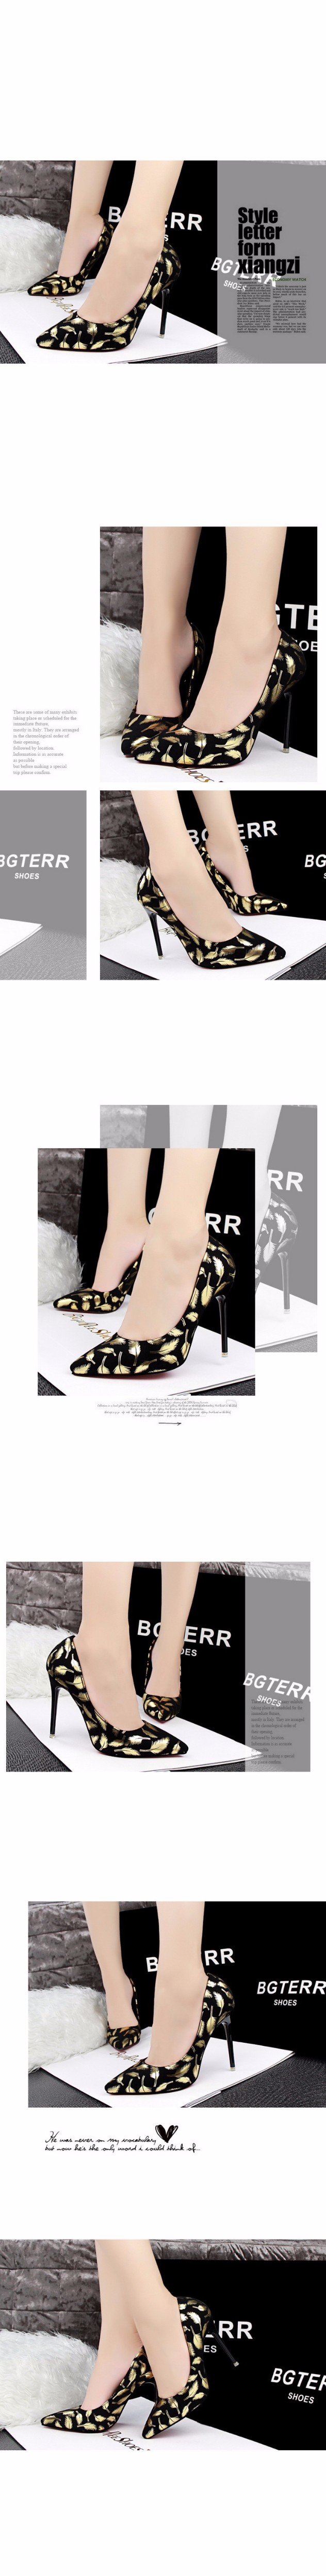 2016 New Sexy High-heeled Pumps Women Shoes High Heels Feather Printing Shallow Mouth Thin Heel Pointed Toe Shoes For Women Z3.5